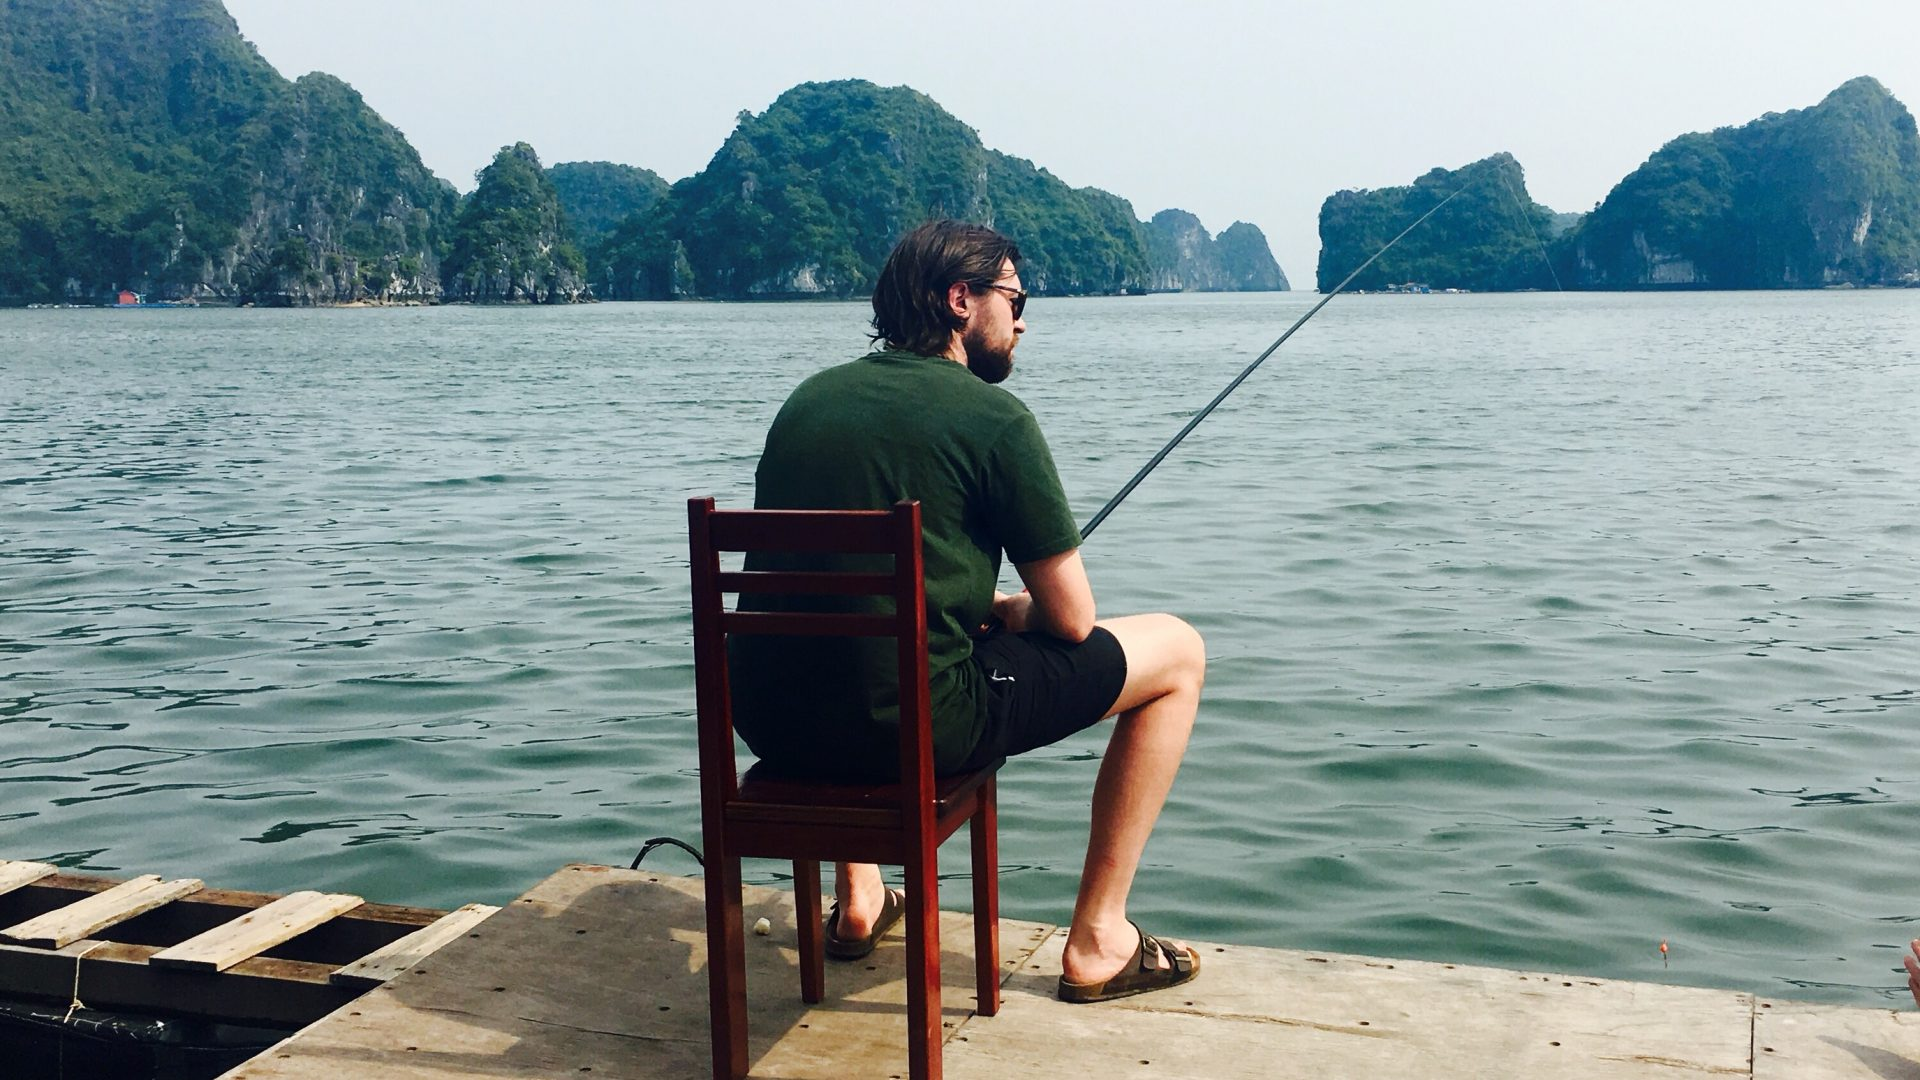 Fishing in Lan Ha Bay, Vietnam.